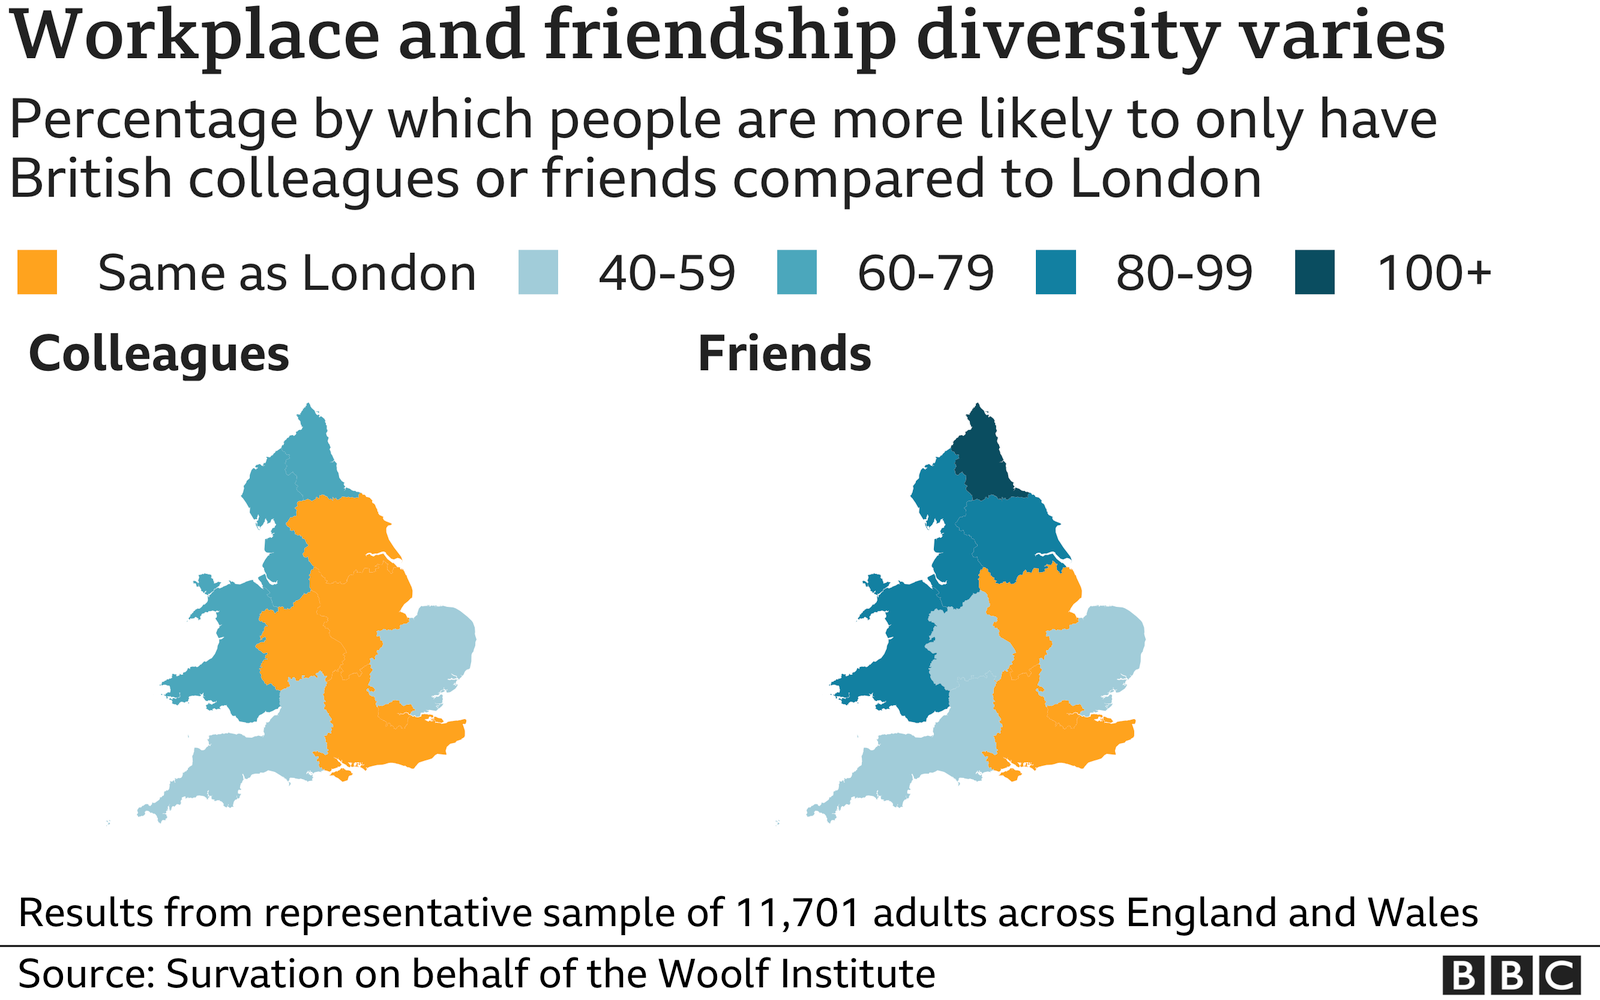 Graphic showing the percentage by which people are more likely to only have British colleagues or friends compared to London